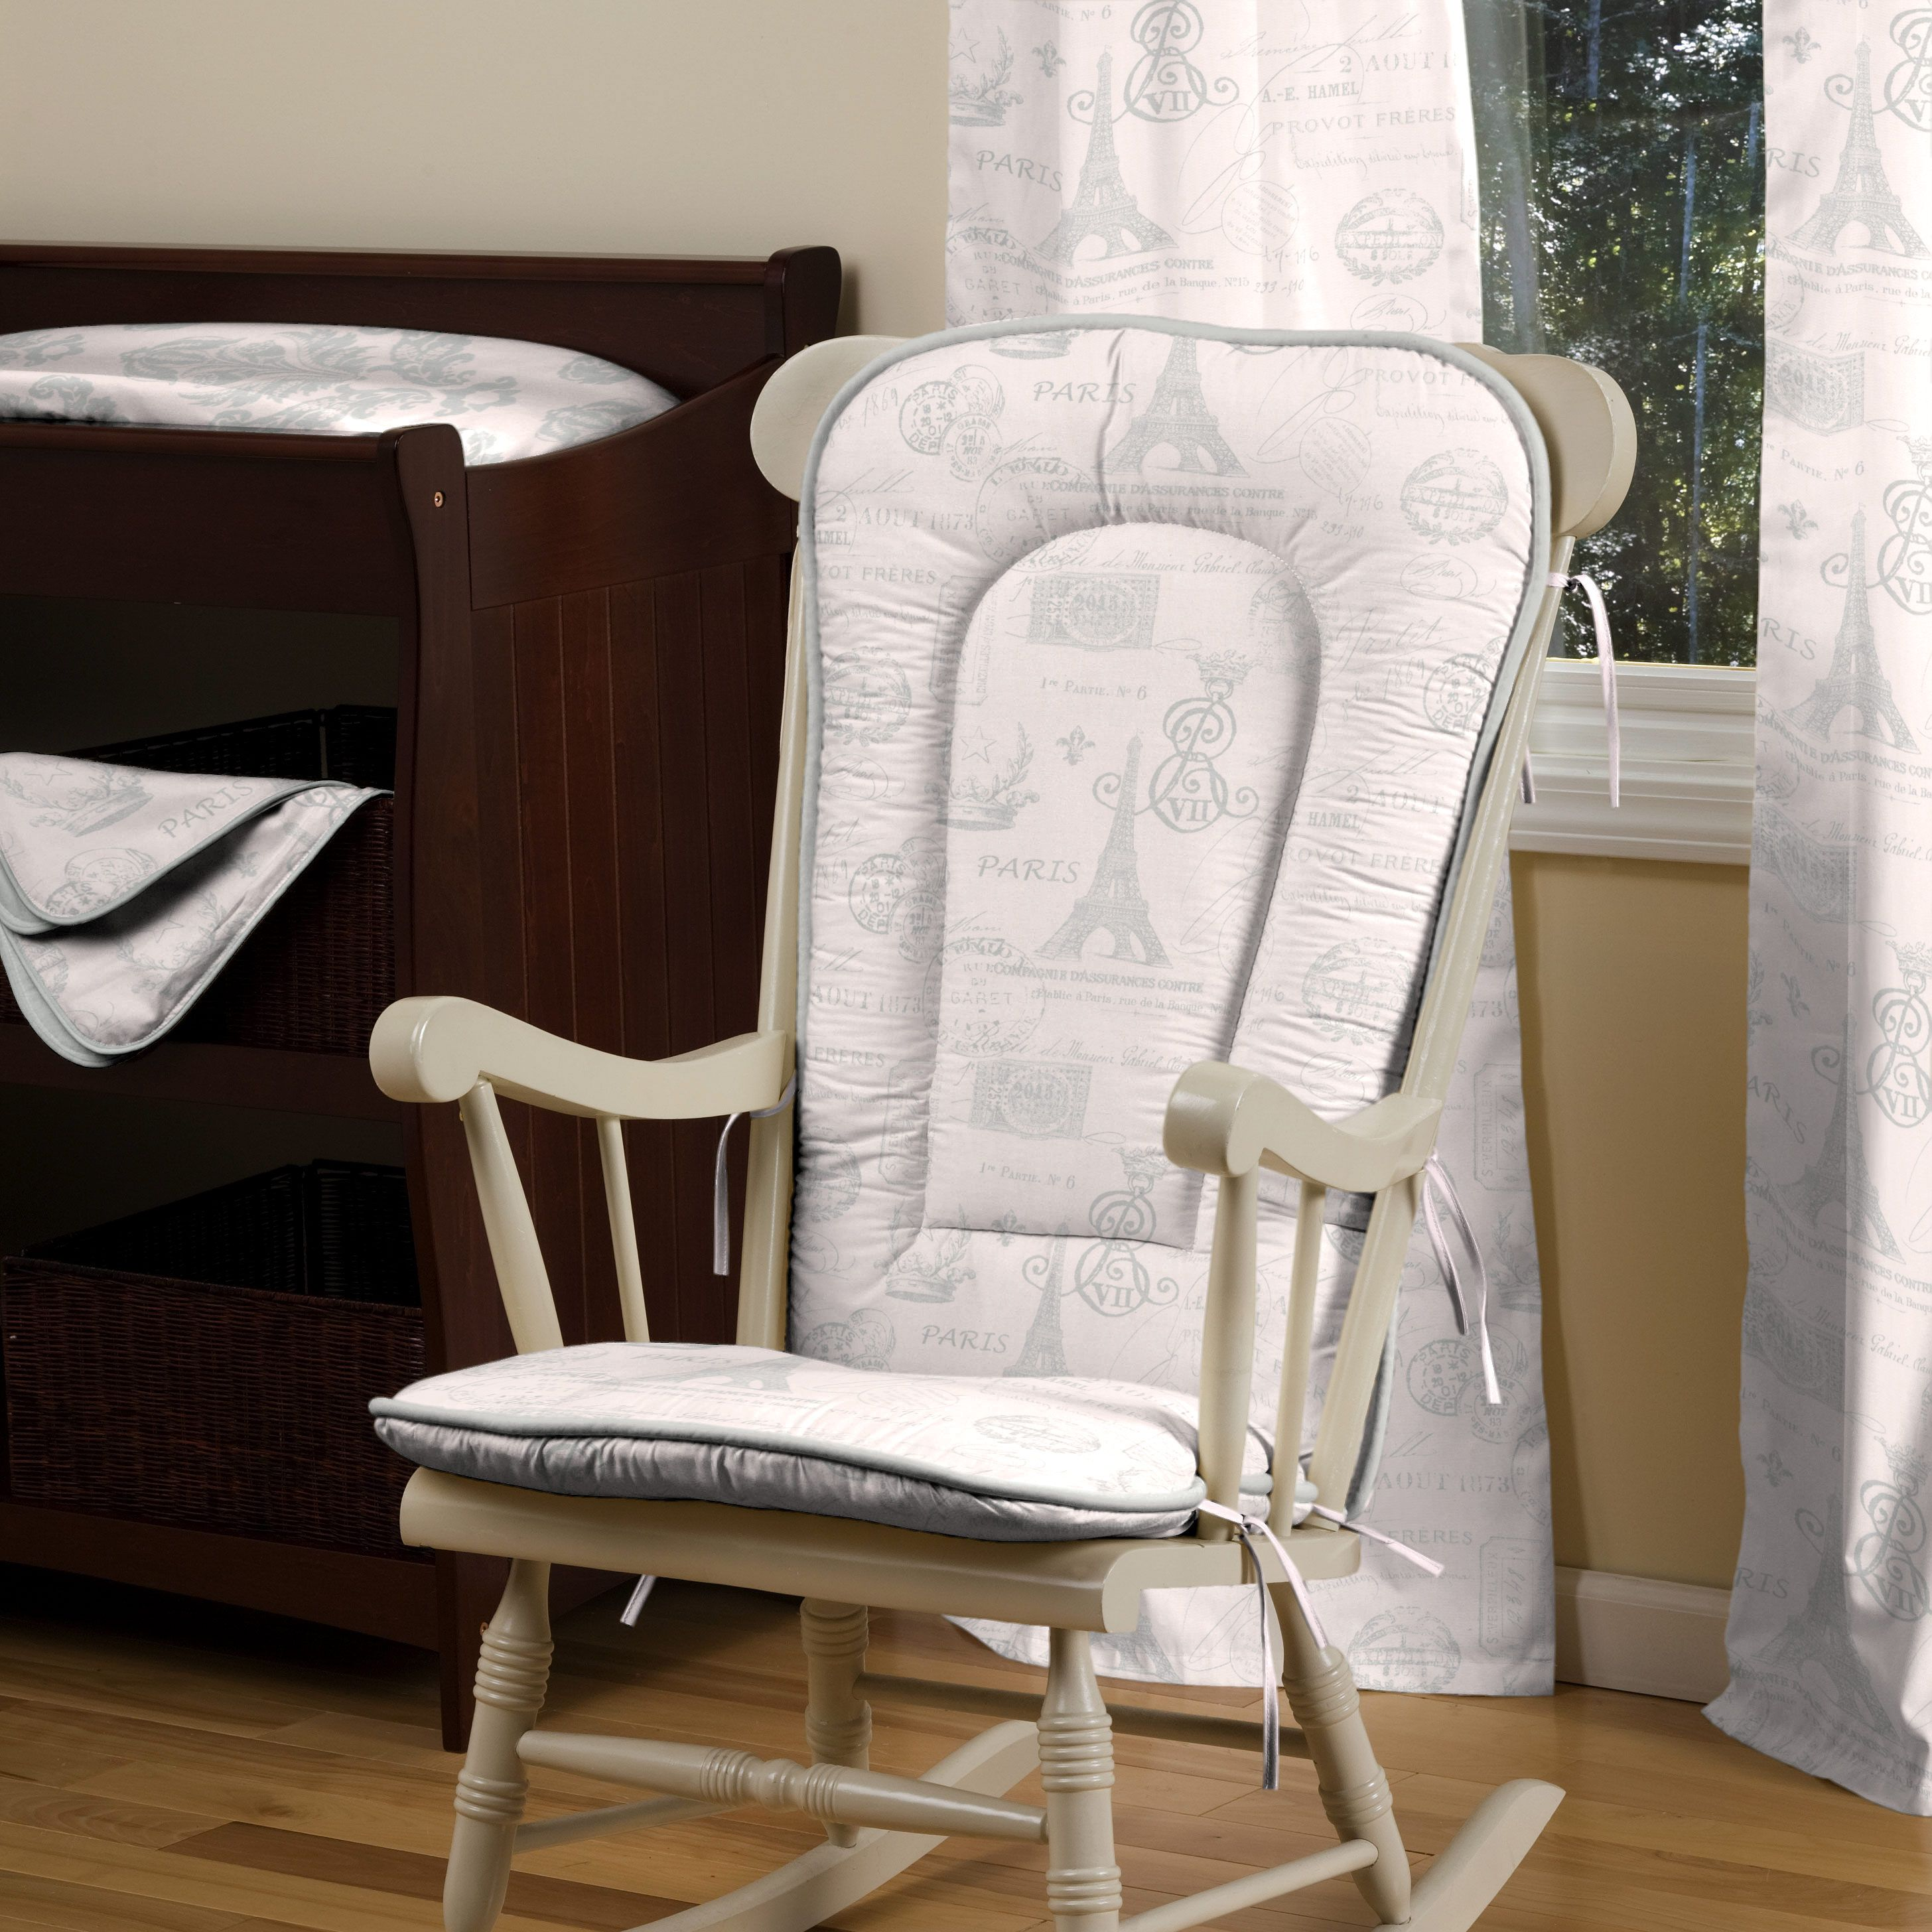 paris script rocking chair pad | rocking chairs, chairs and chair pads